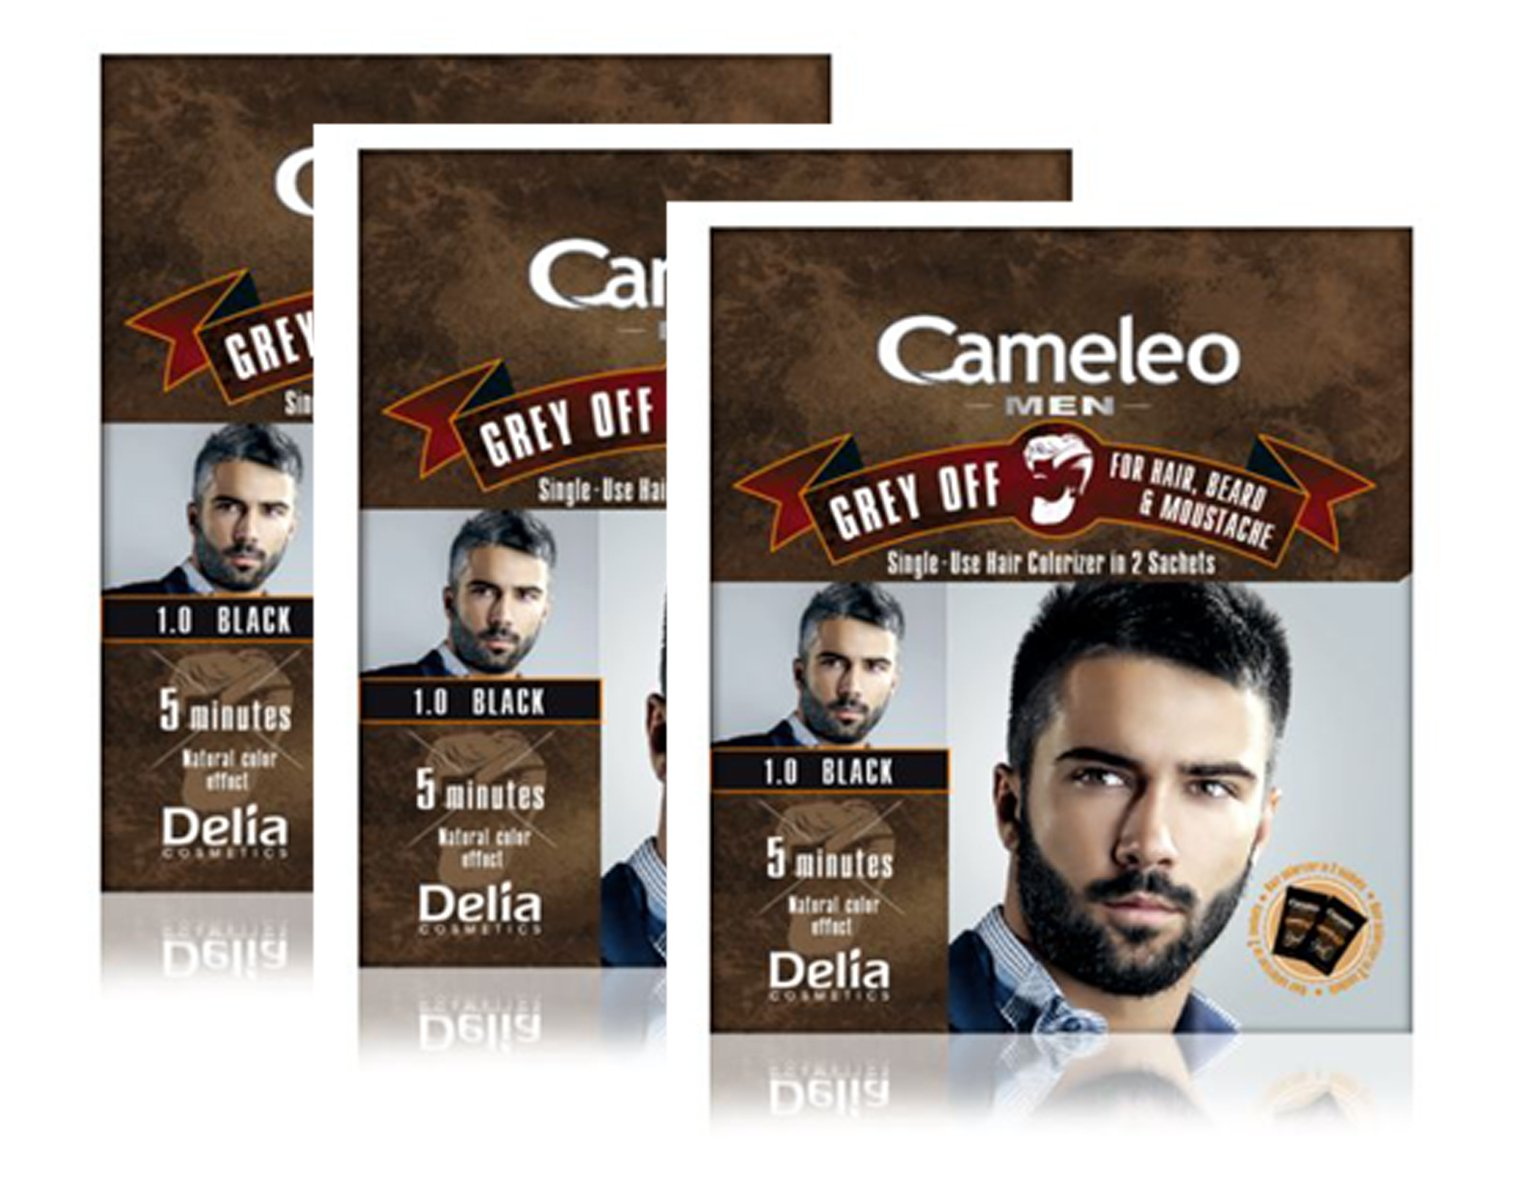 Cameleo Men Hair Beard Mustache Black Color Cream Grey OFF - Ammonia, PPD Free, 5 min (pack of 3) by Delia Cosmetics